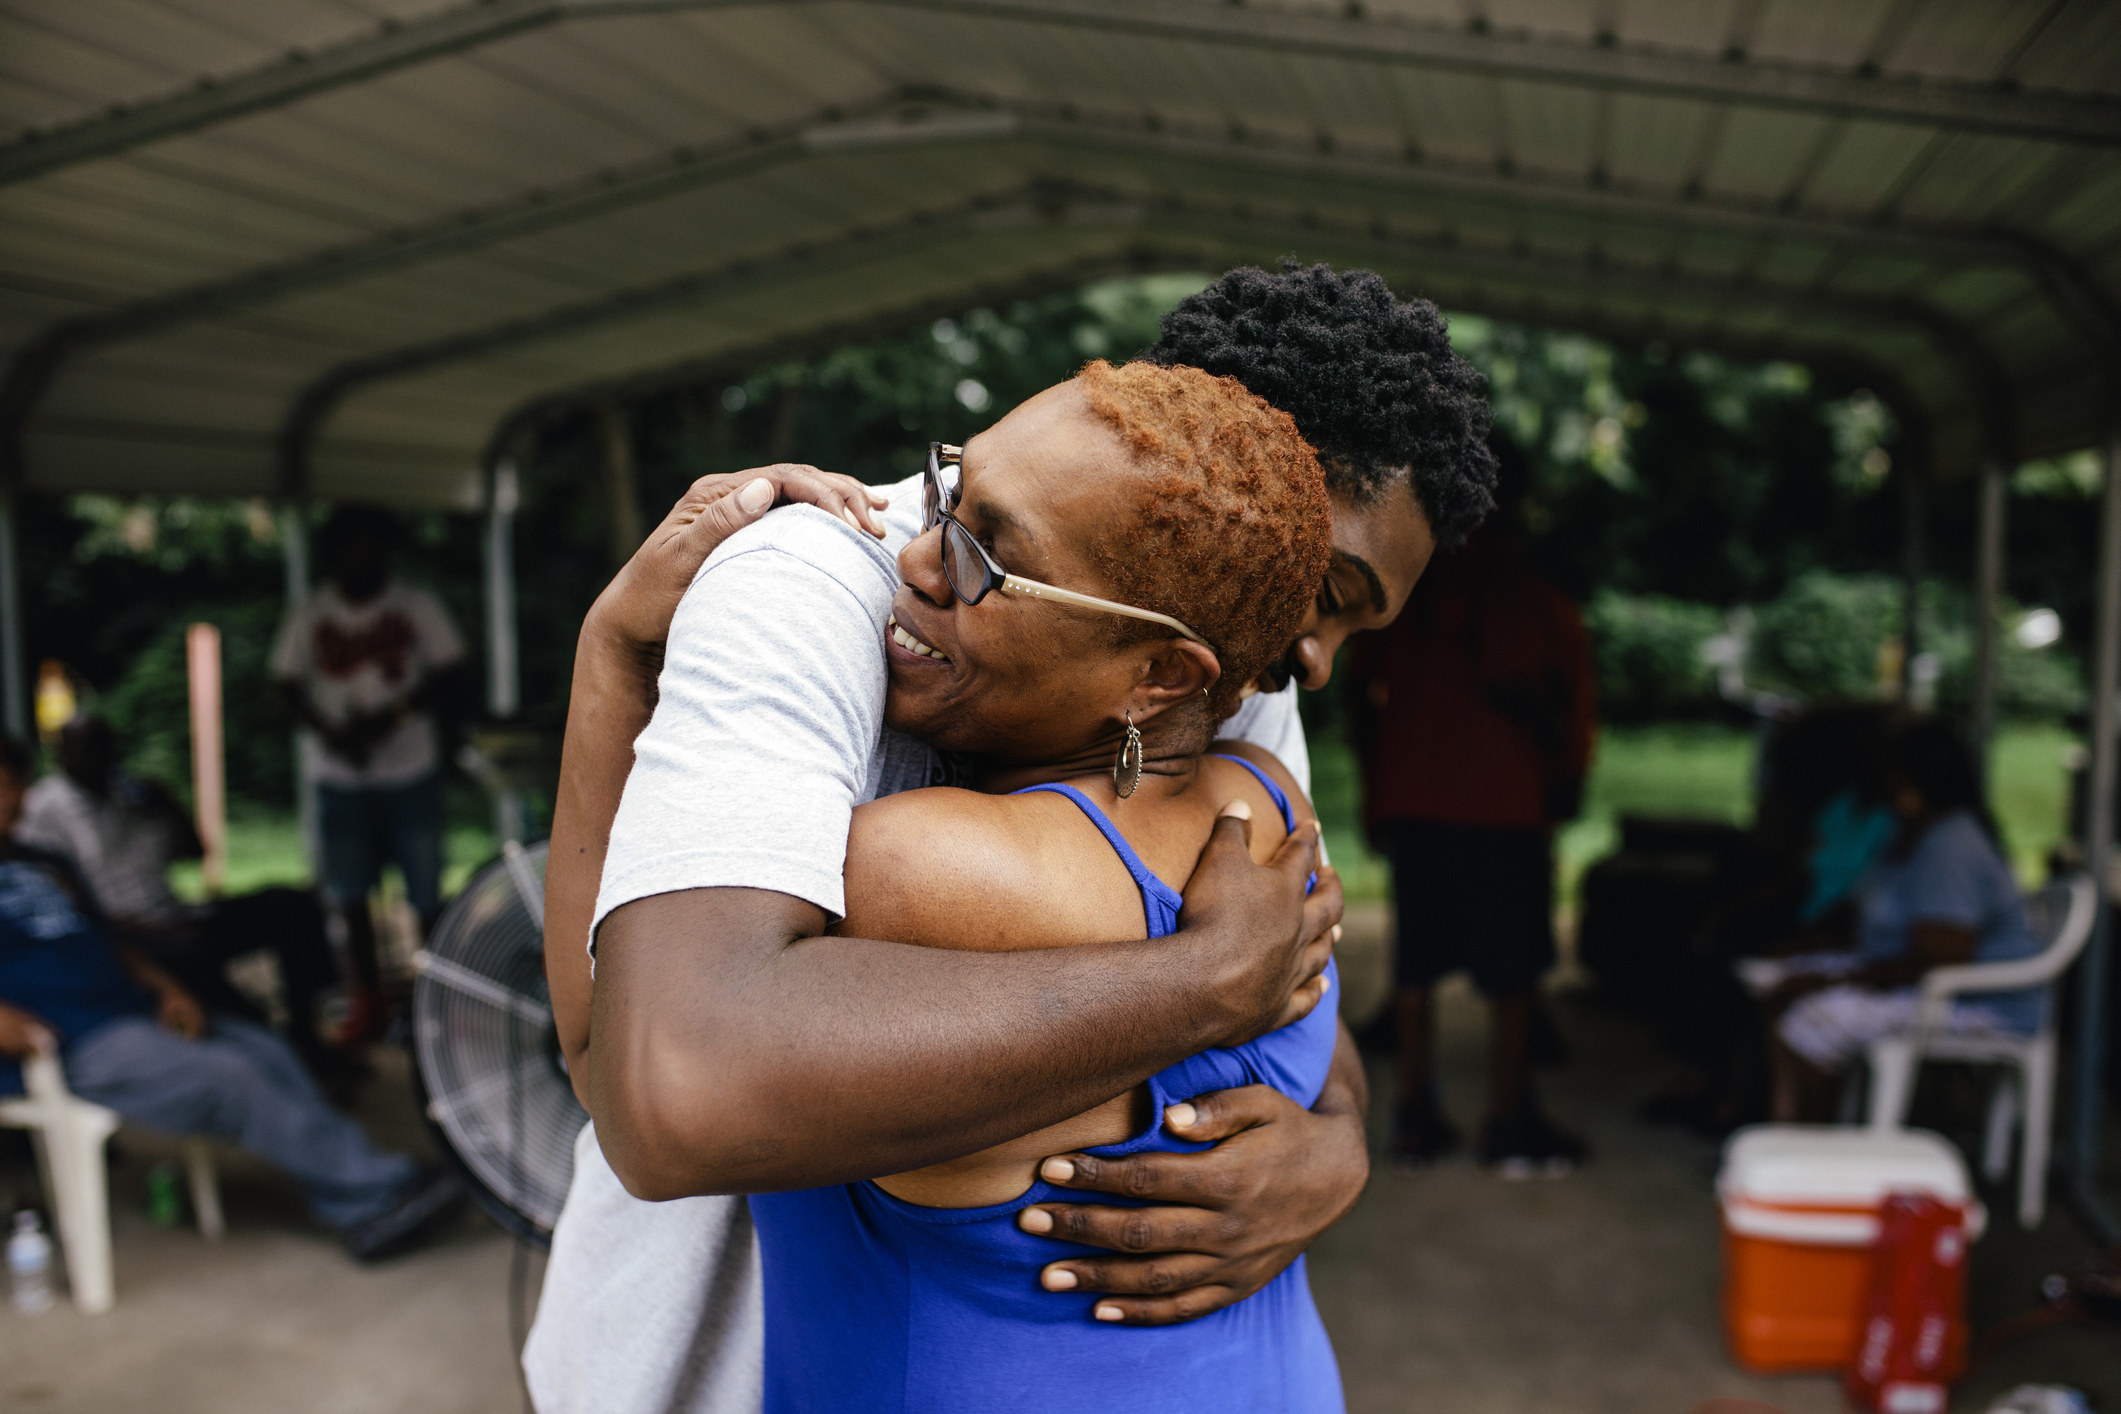 Middle aged black mother hugging her young adult son. Family outdoor cookout happening in the background.